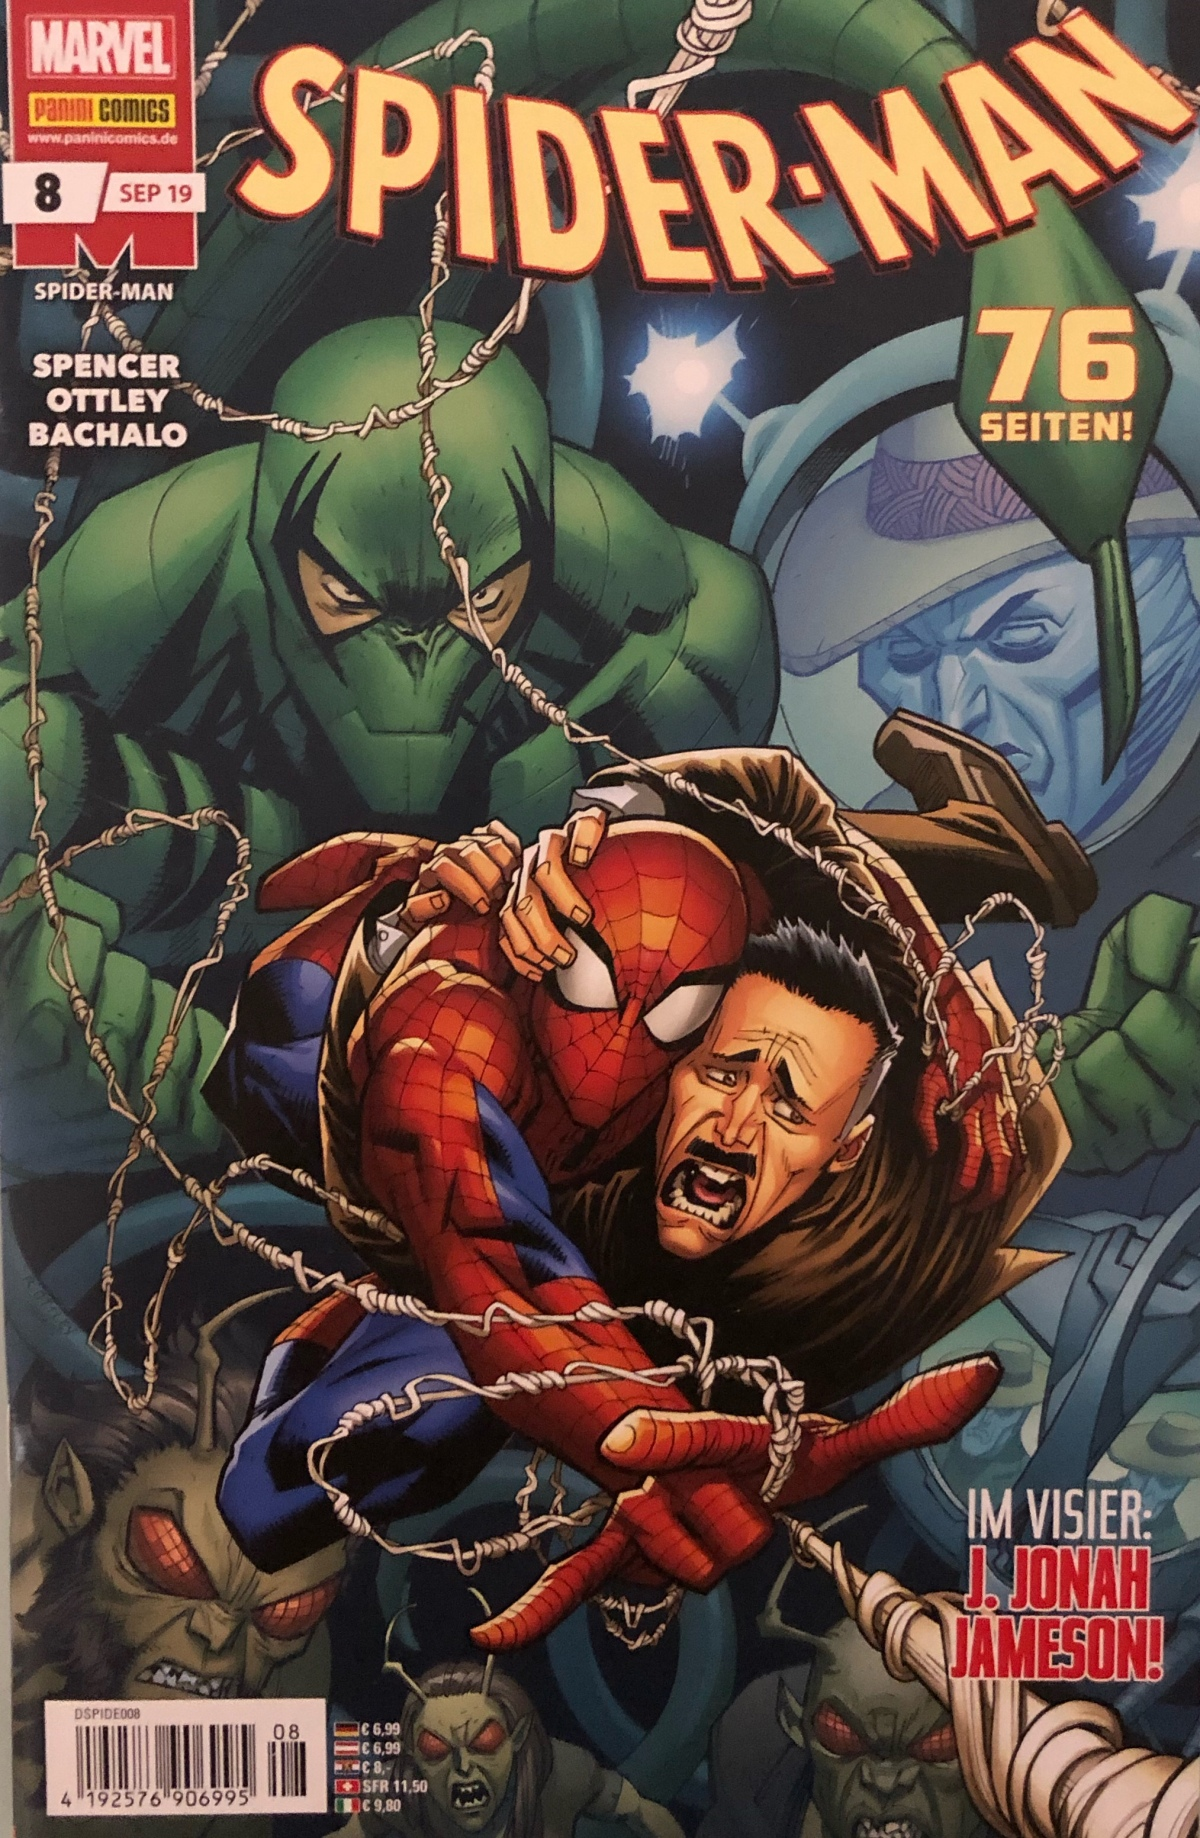 The Amazing Spider-Man #13 |Review